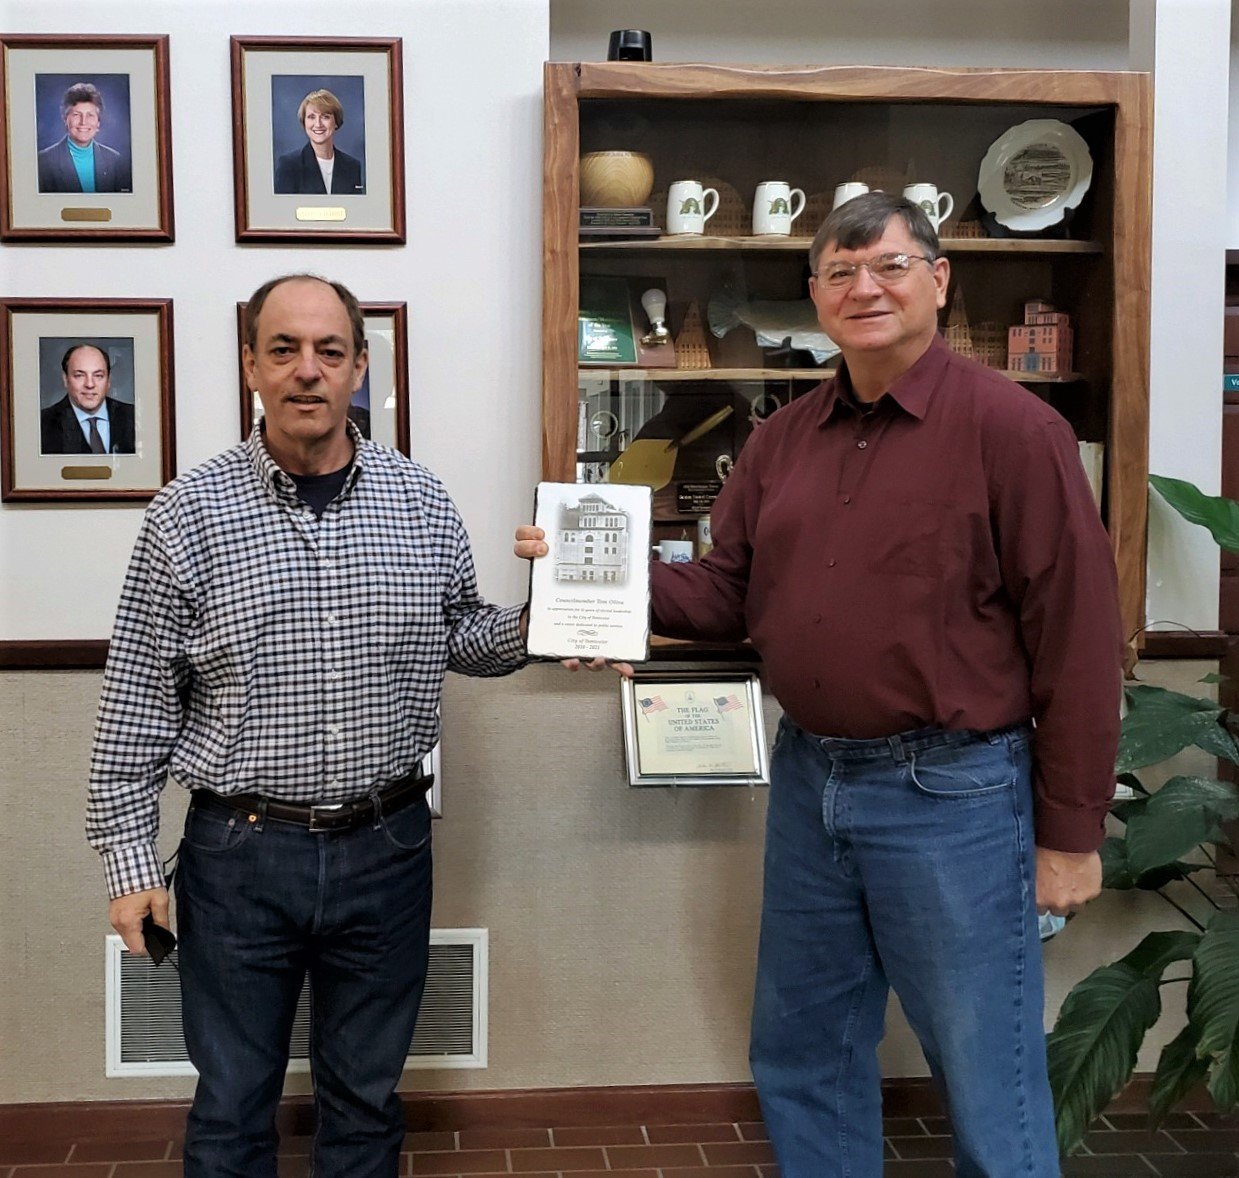 Mayor Pete Kmet presented Councilmember Tom Oliva with a plaque in recognition of his years of service to the community on Wed., Feb. 17, 2020.